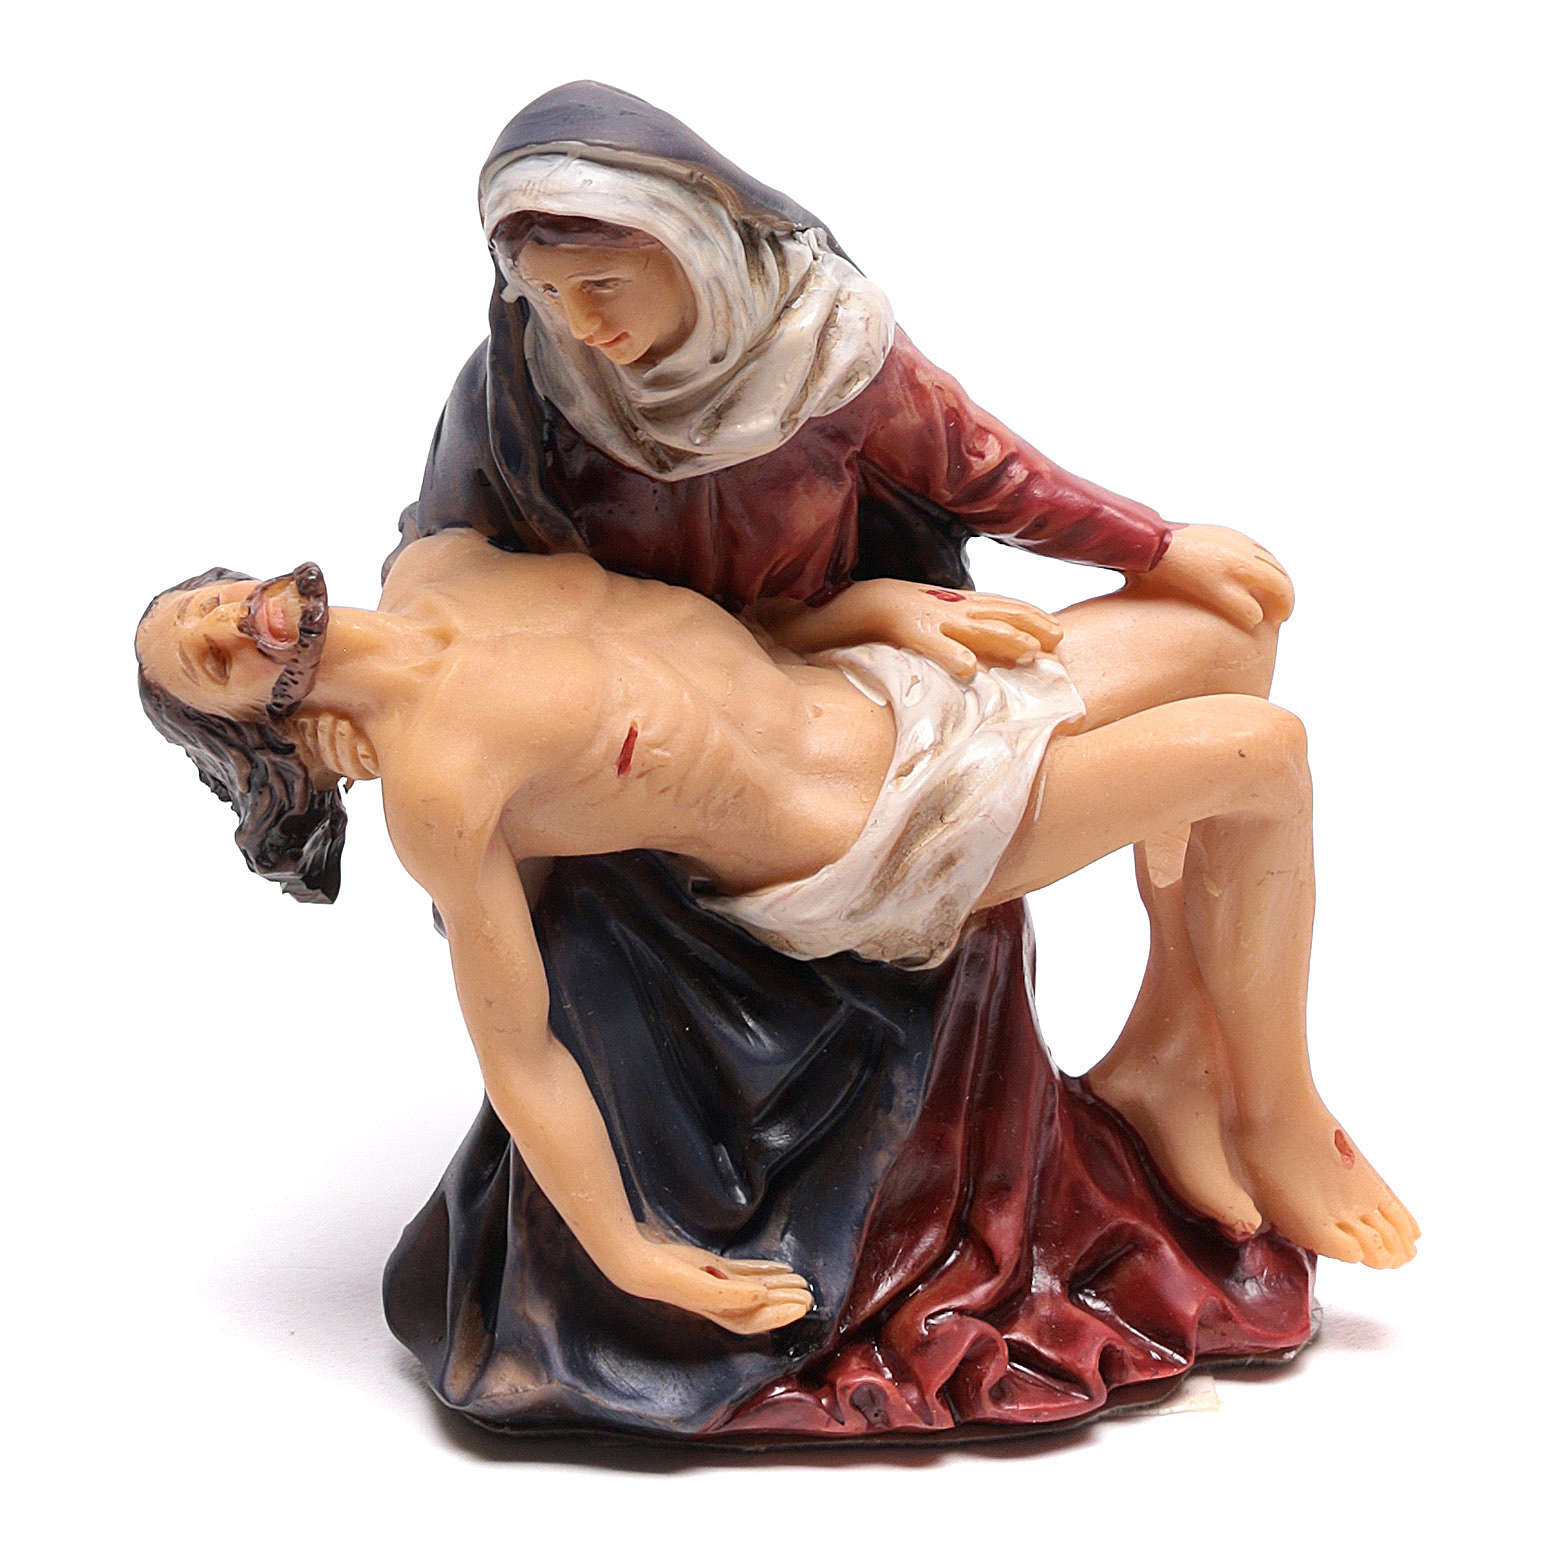 Statuette of Jesus removed from the cross in the arms of Mary 9 cm 4